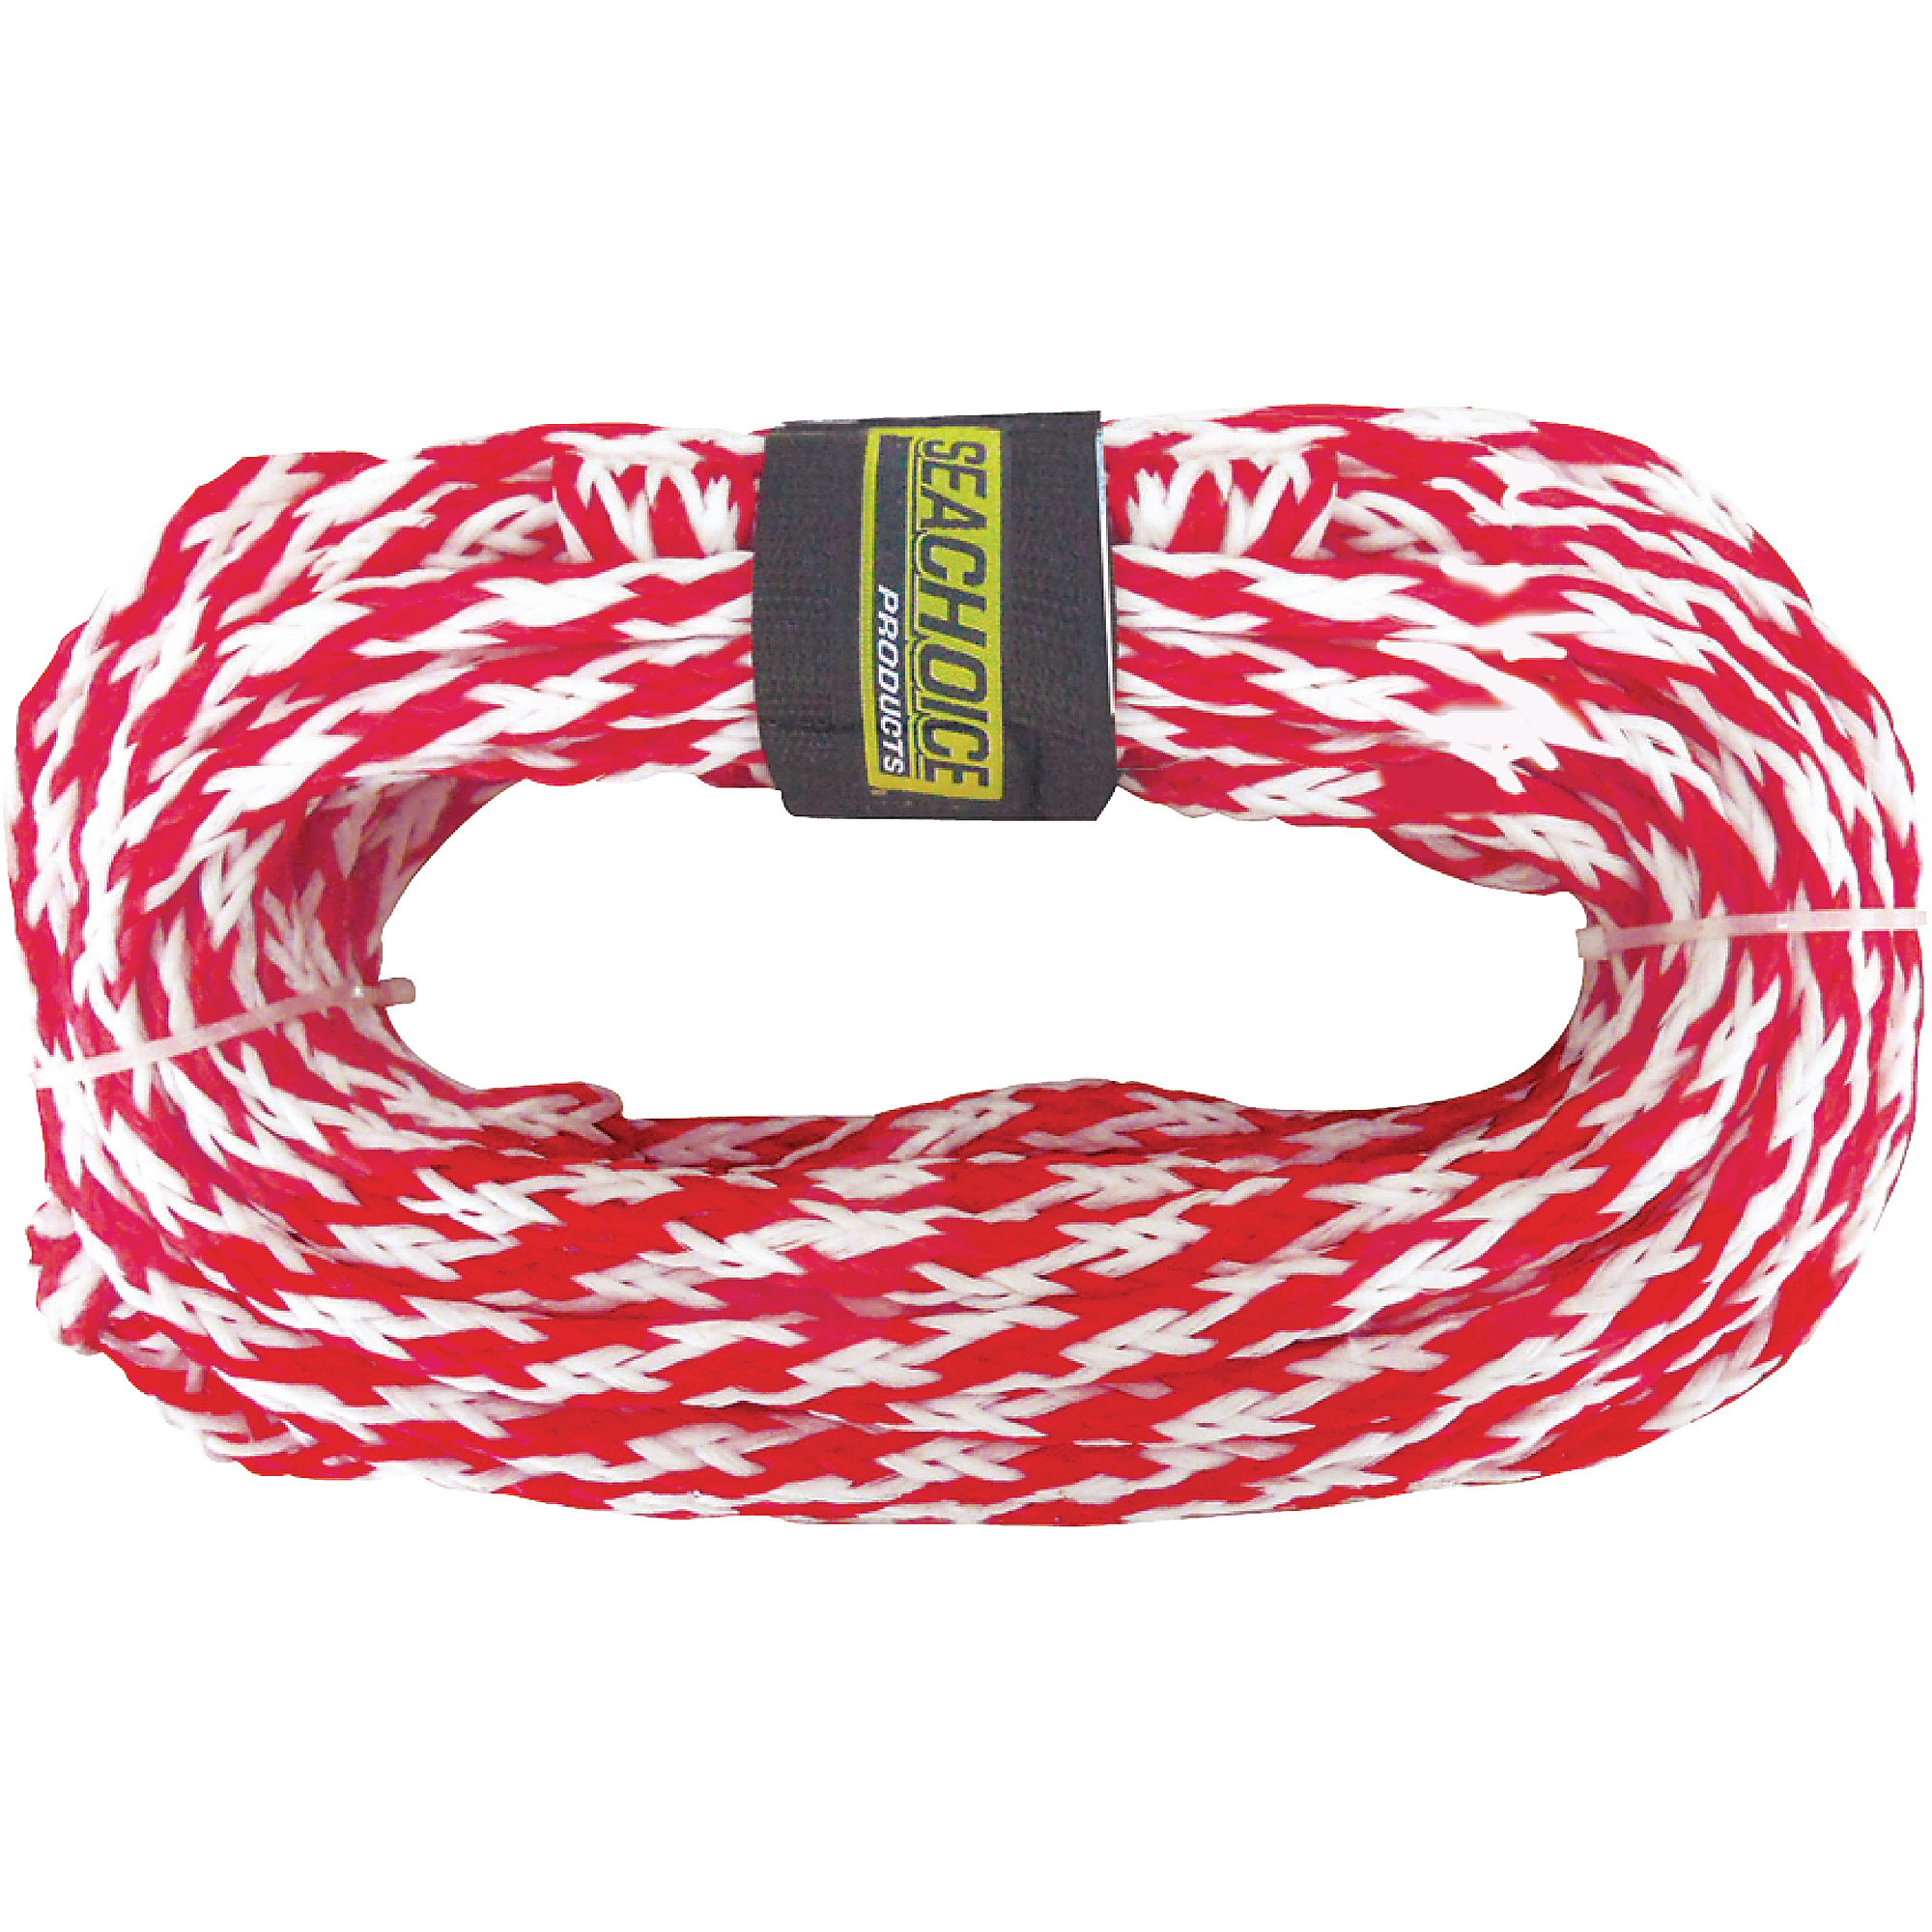 Seachoice Tow Rope for 2 Riders, 60' by Seachoice Products